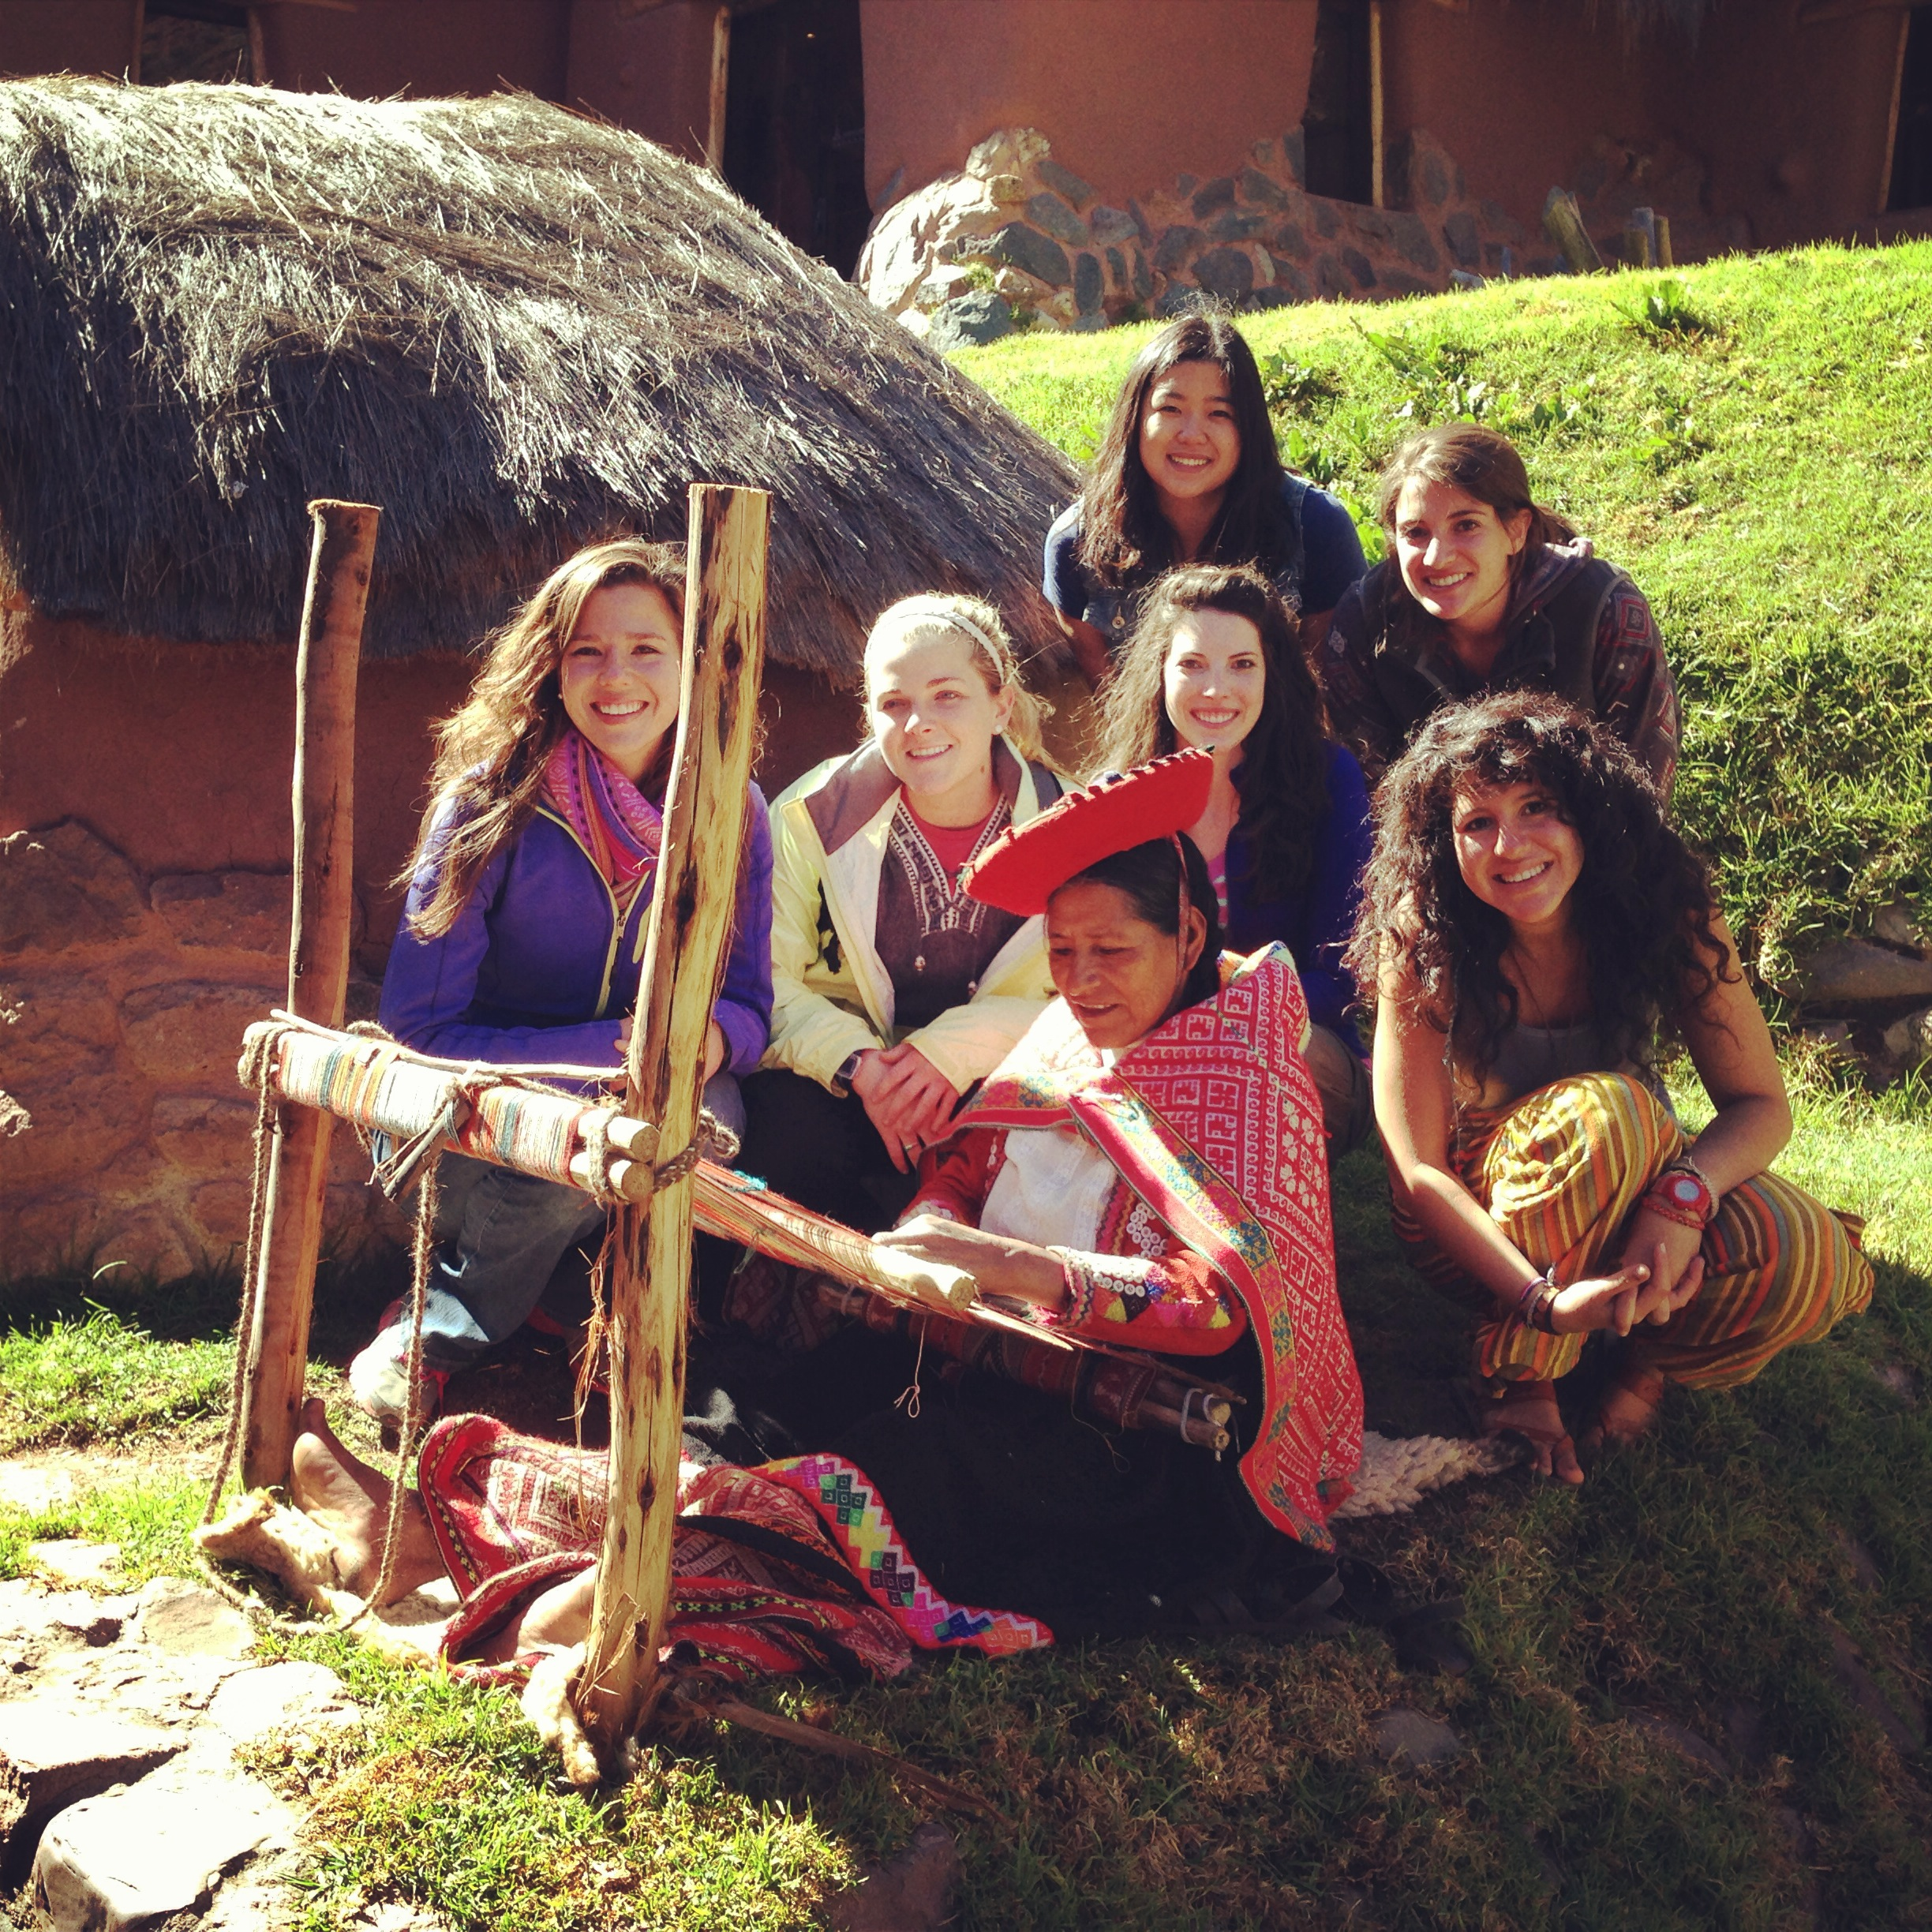 We met this Quechua woman during a Sacred Valley tour with Inca Trail Trekking Company . It takes her two weeks to make each manta (blanket). From left to right: Jenny Poliwka, Amy Scheel, Lauren Braun, Joanie Kim (above), Dani Corona, and Vanessa Rivera.    Photo taken: May 26, 2013.